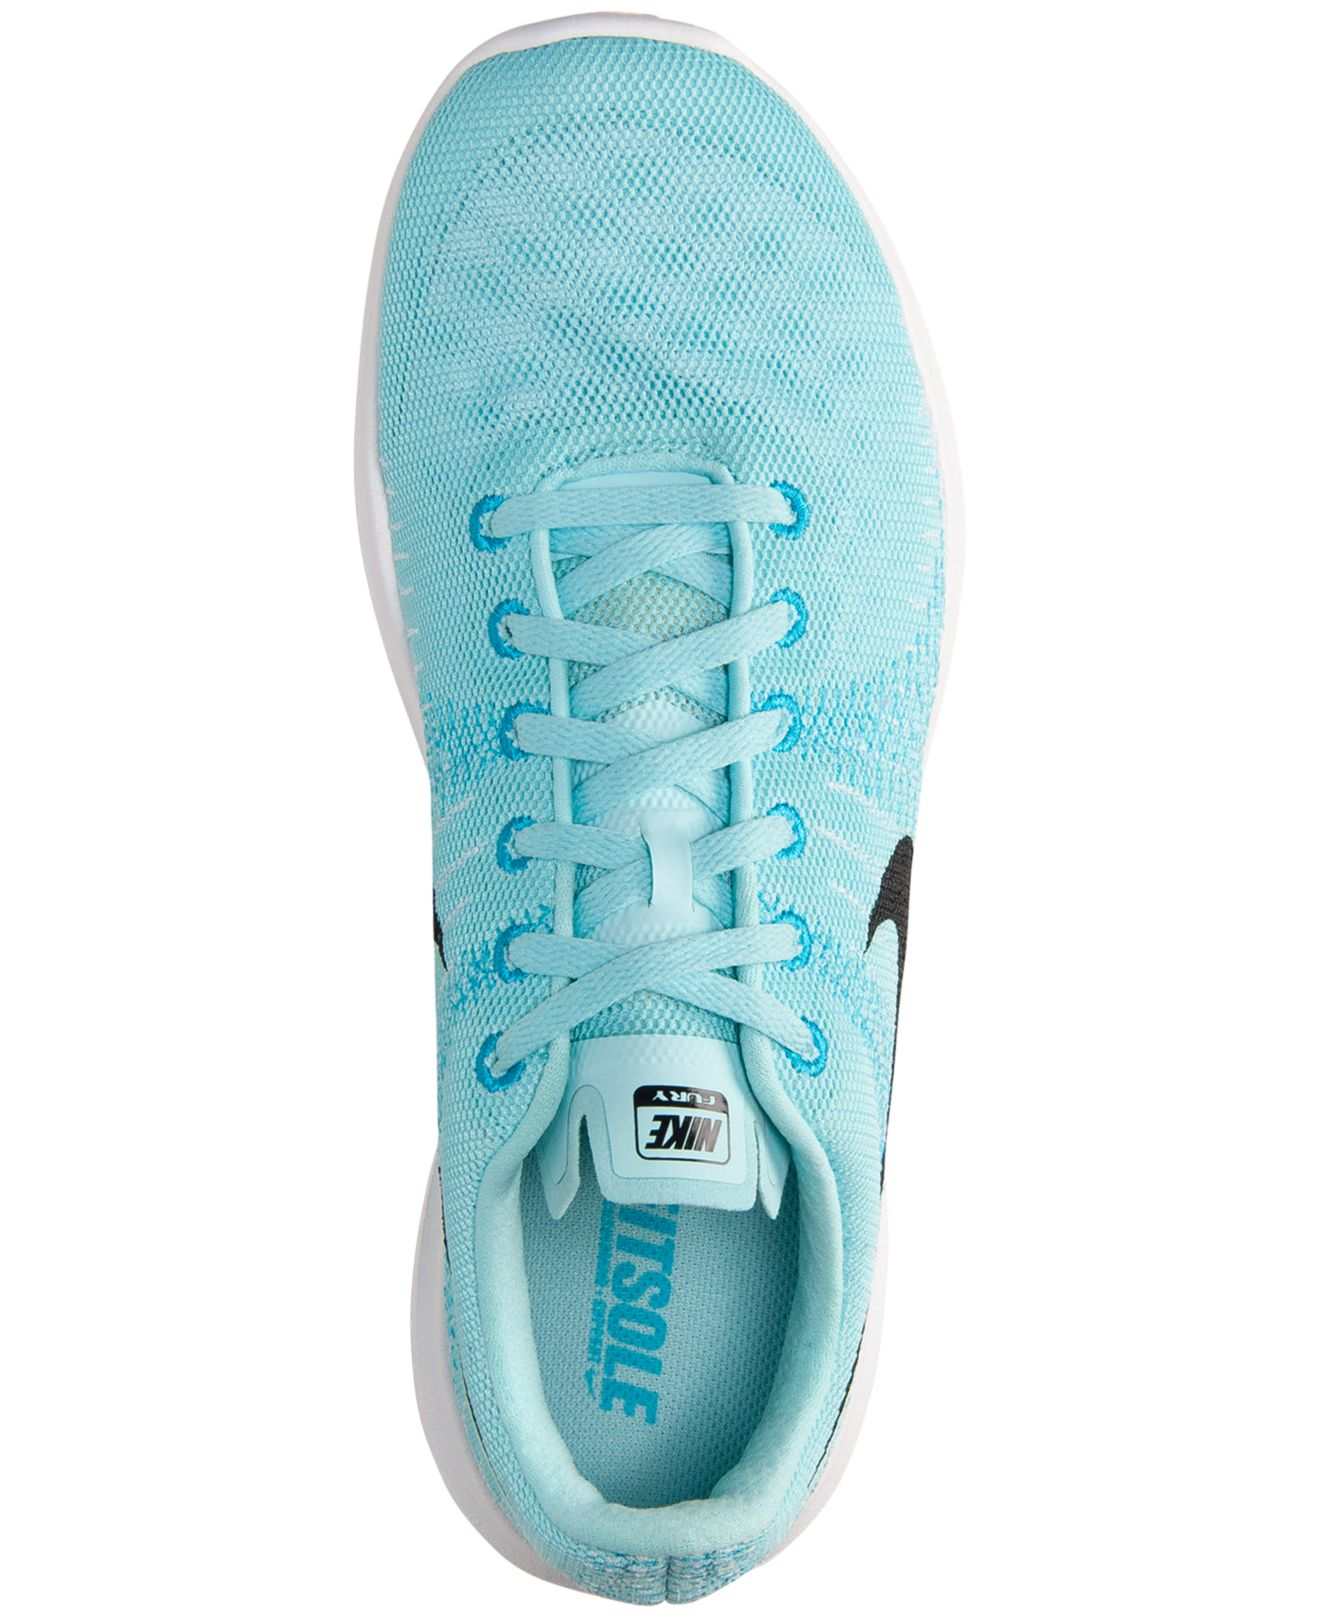 04b90d9ab200 ... hot lyst nike womens flex fury running sneakers from finish line in blue  bef94 30b8b